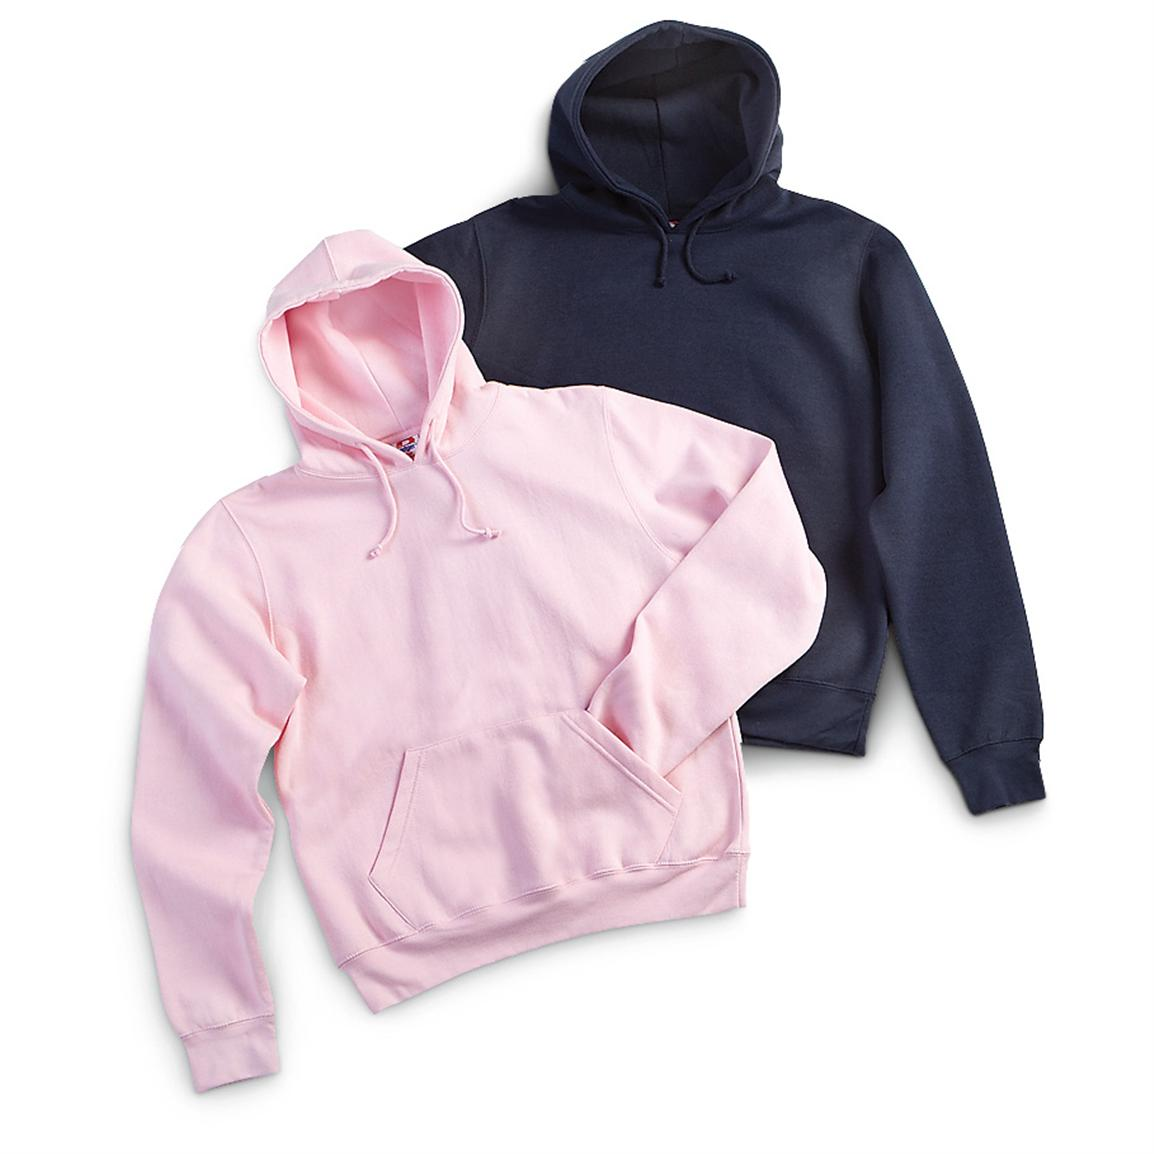 2 Pullover Hoodies, Pink and Navy